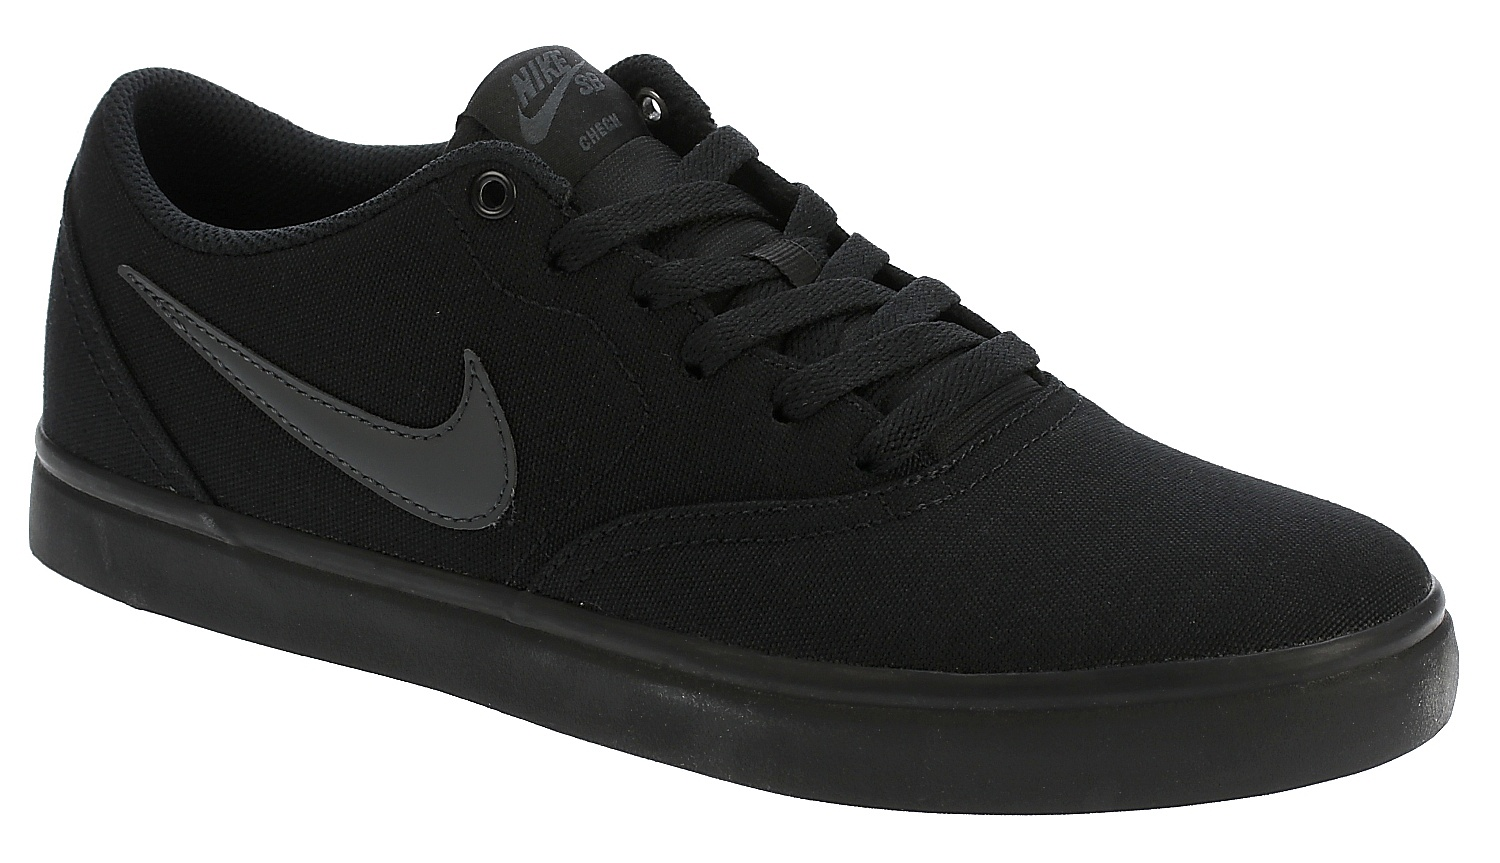 boty Nike SB Check Solar Canvas - Black/Anthracite 45.5